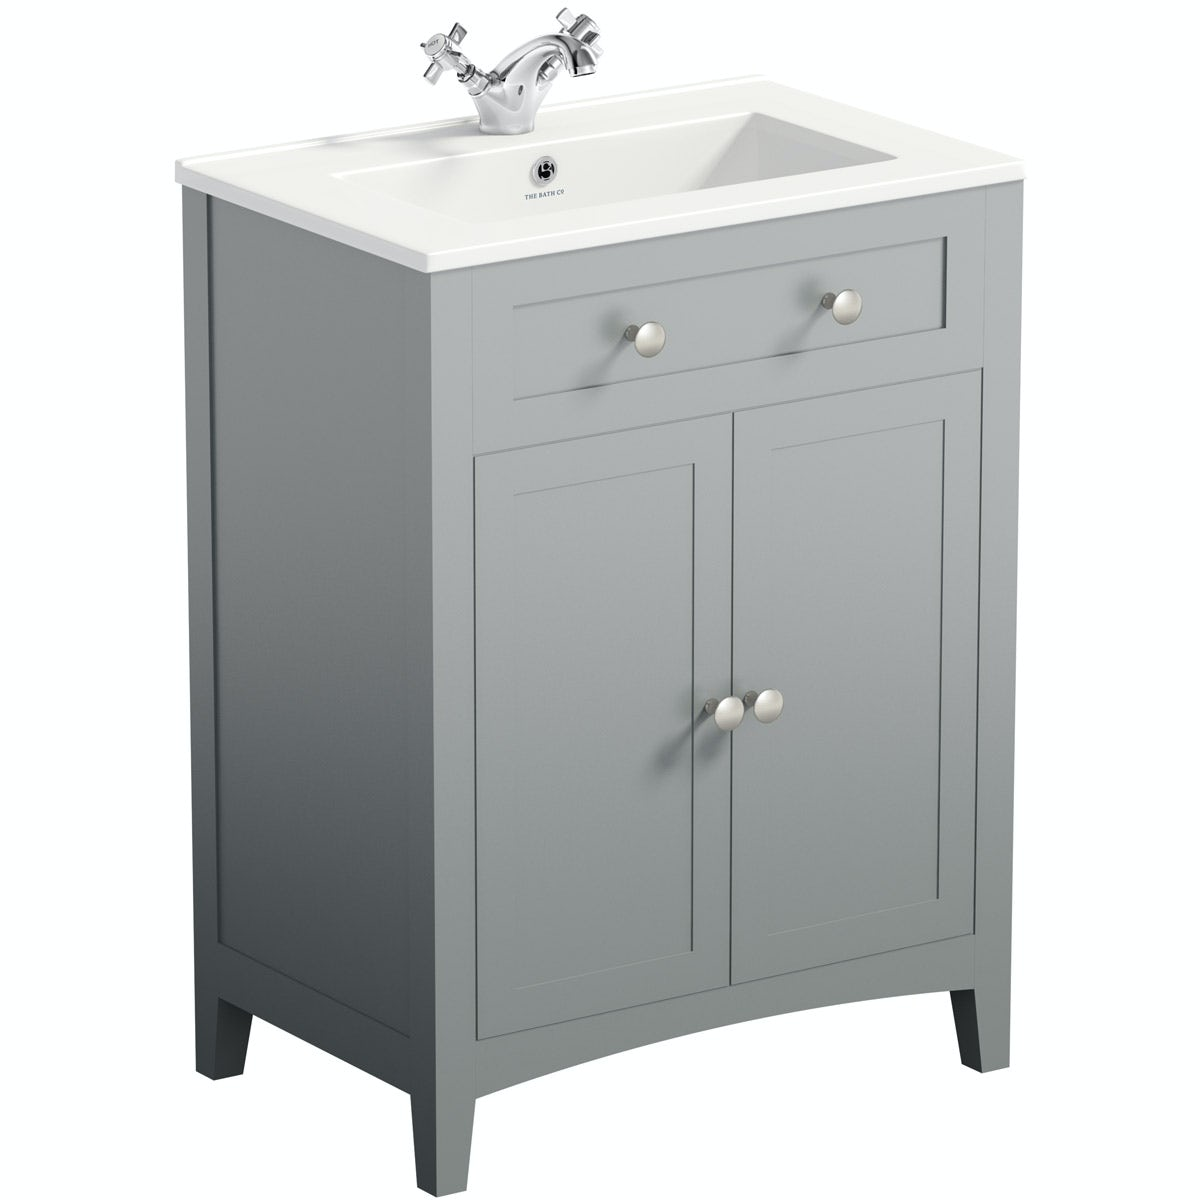 The Bath Co. Camberley grey vanity unit 600mm with sink mixer